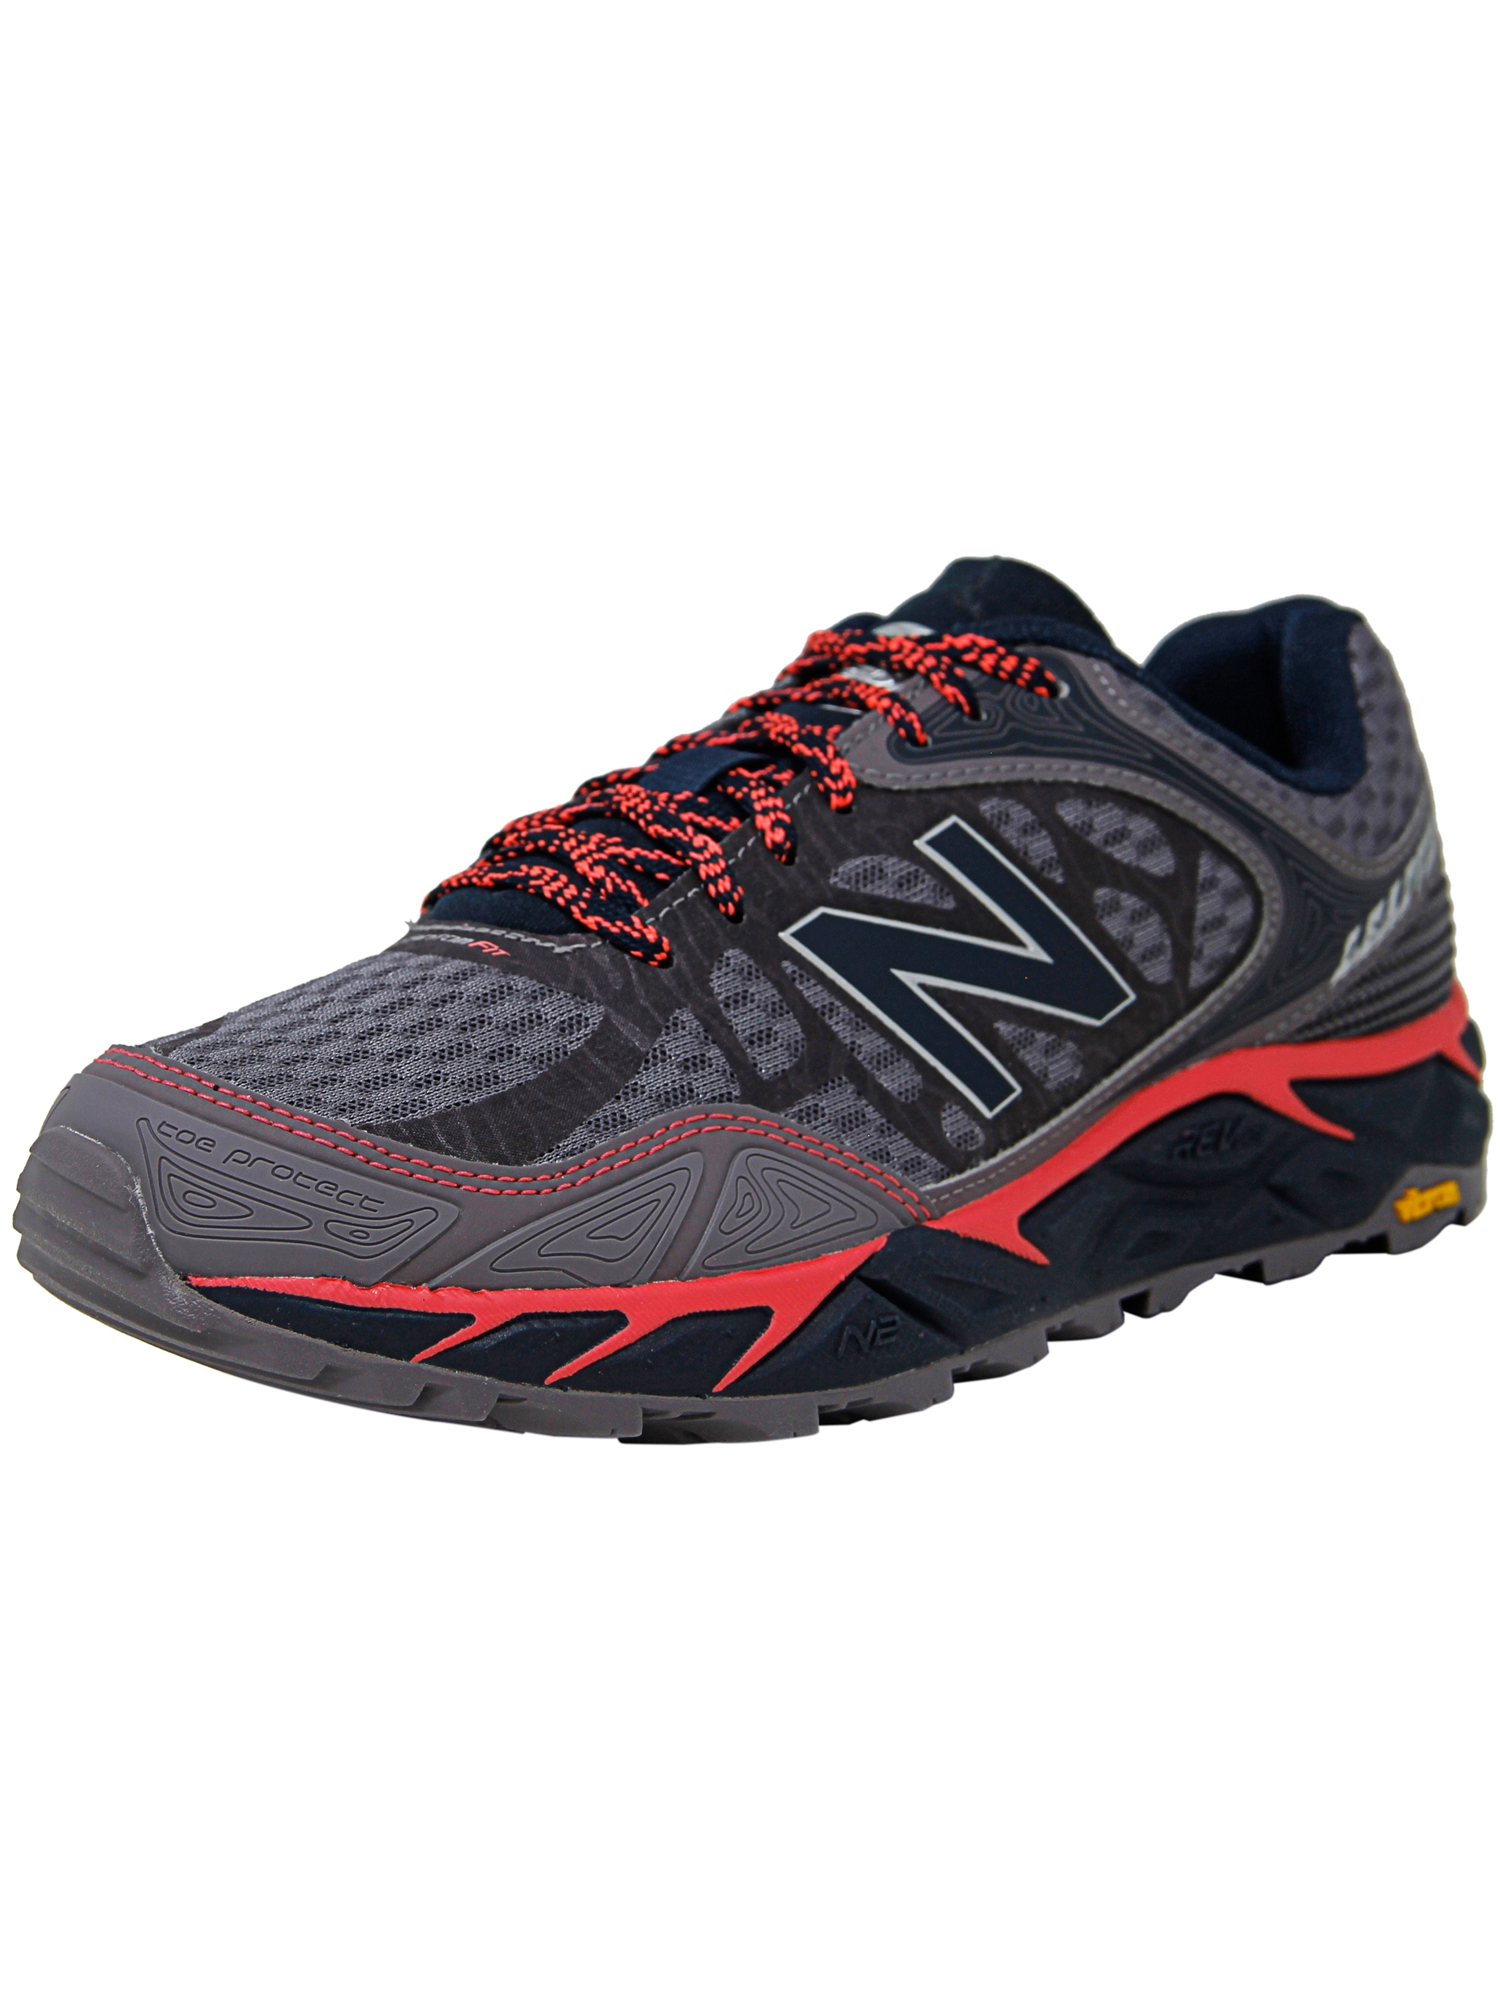 New Balance Women's Wtlead S3 Ankle-High Running Shoe - 6M